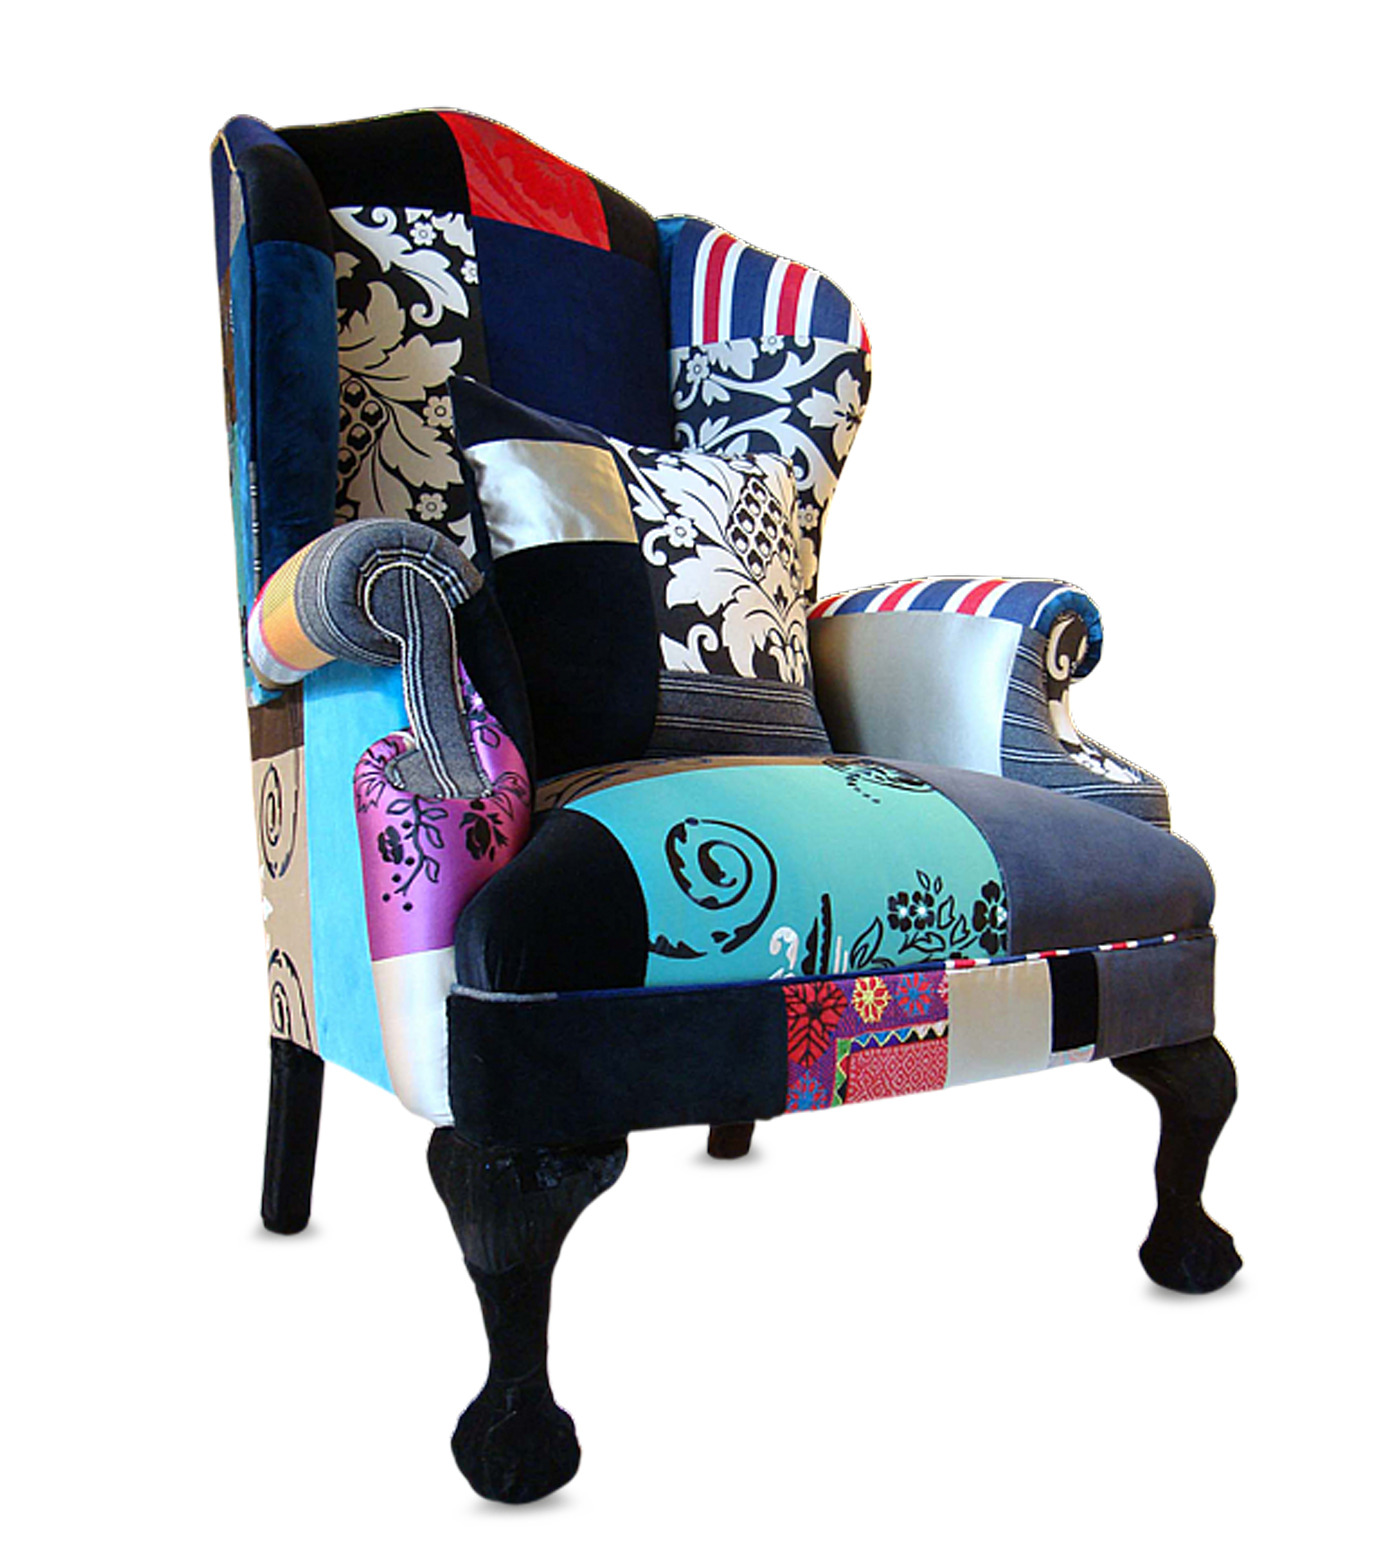 Squintlimited(スクイントリミテッド)のSelkirk wing chair-NONE-10-0 拡大詳細画像1